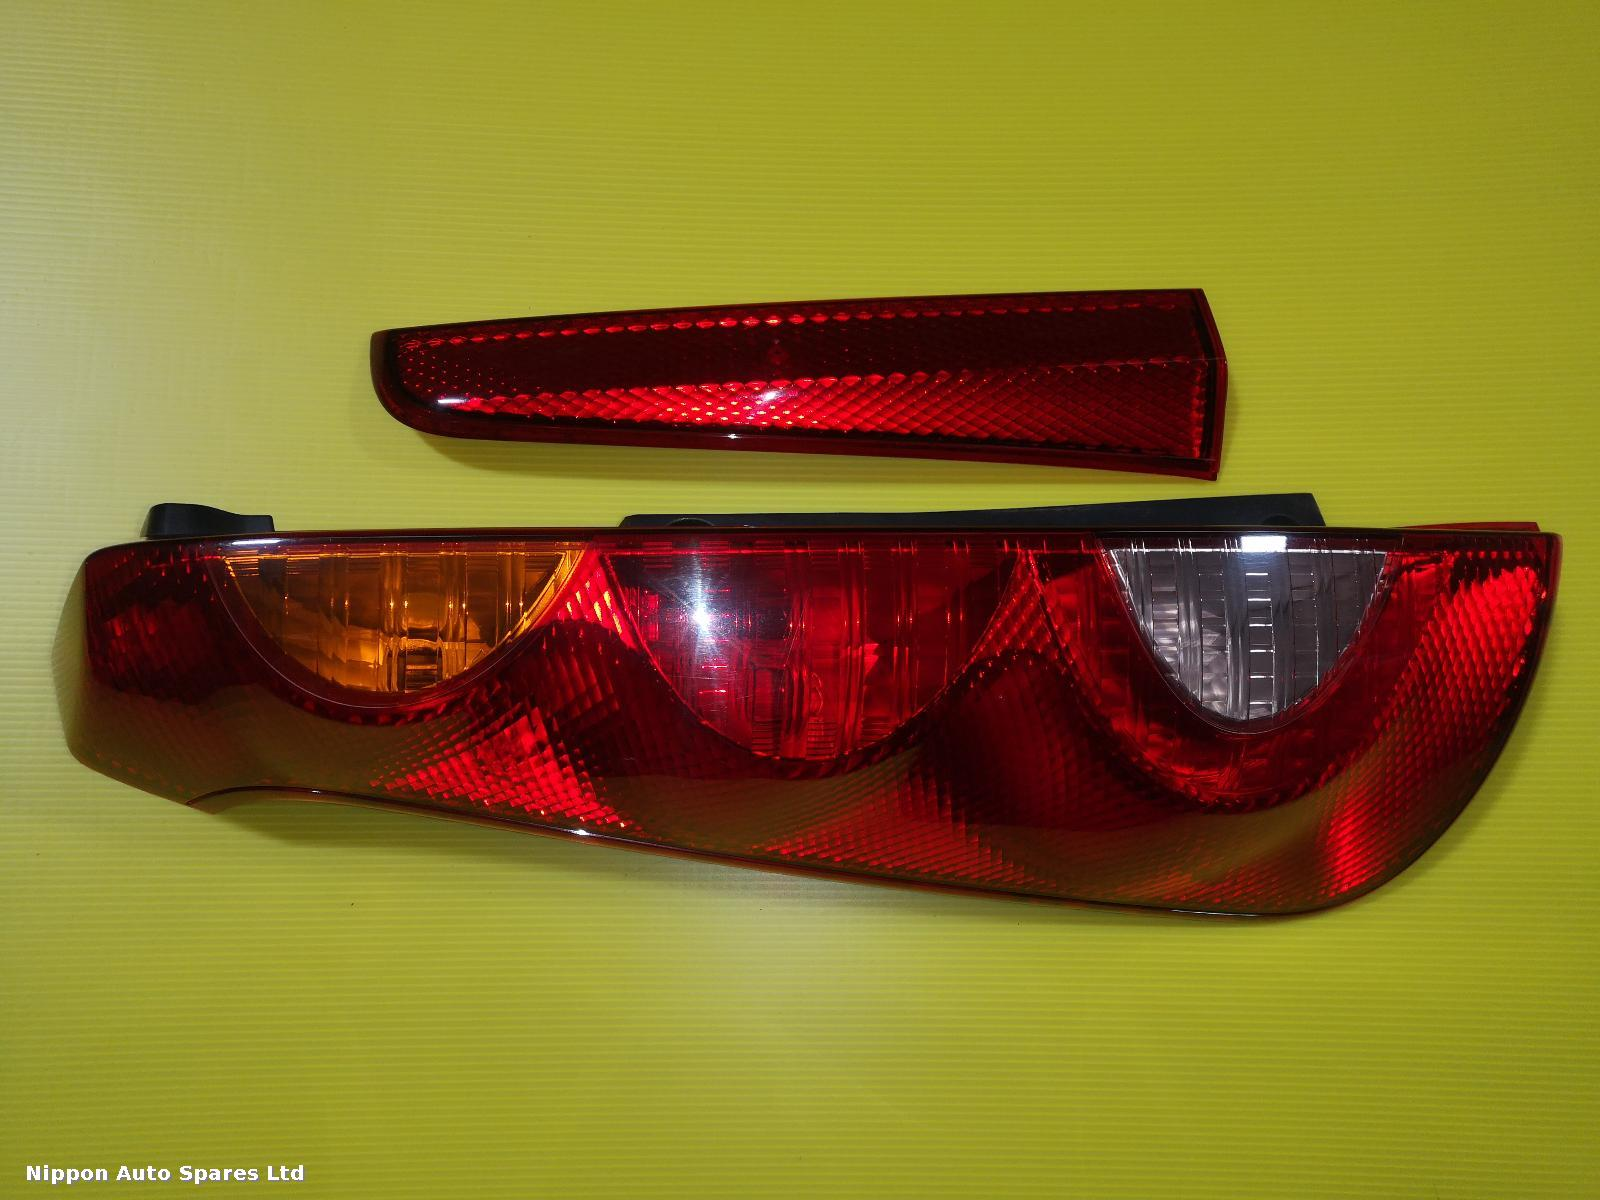 Nissan NOTE L Taillight RED/ORANGE: 57033